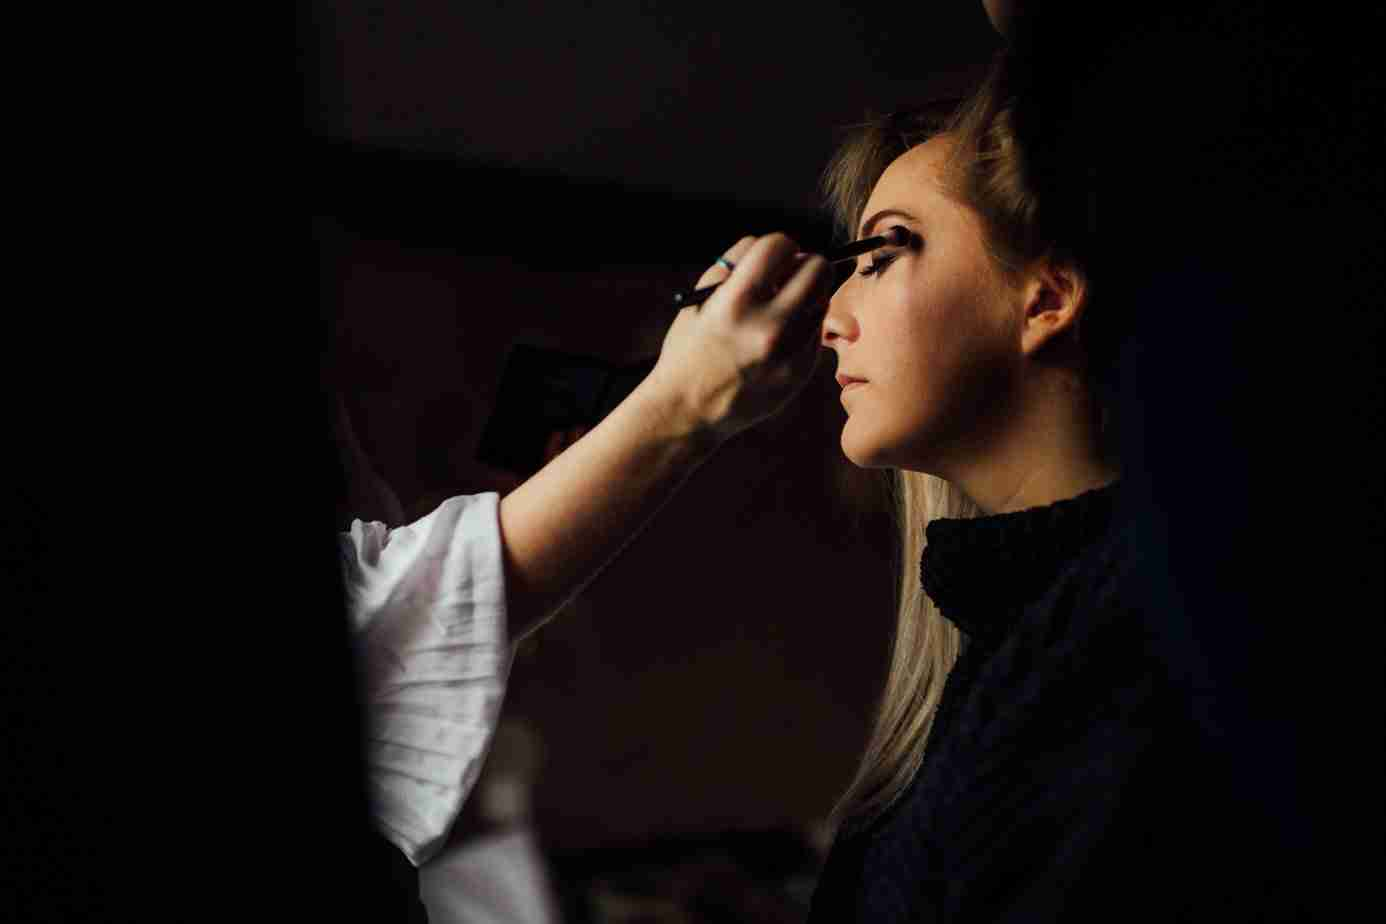 North East based MUBYLEIGH - Hair & Makeup Artist blends eyeshadow during bridal hair and makeuptrial.